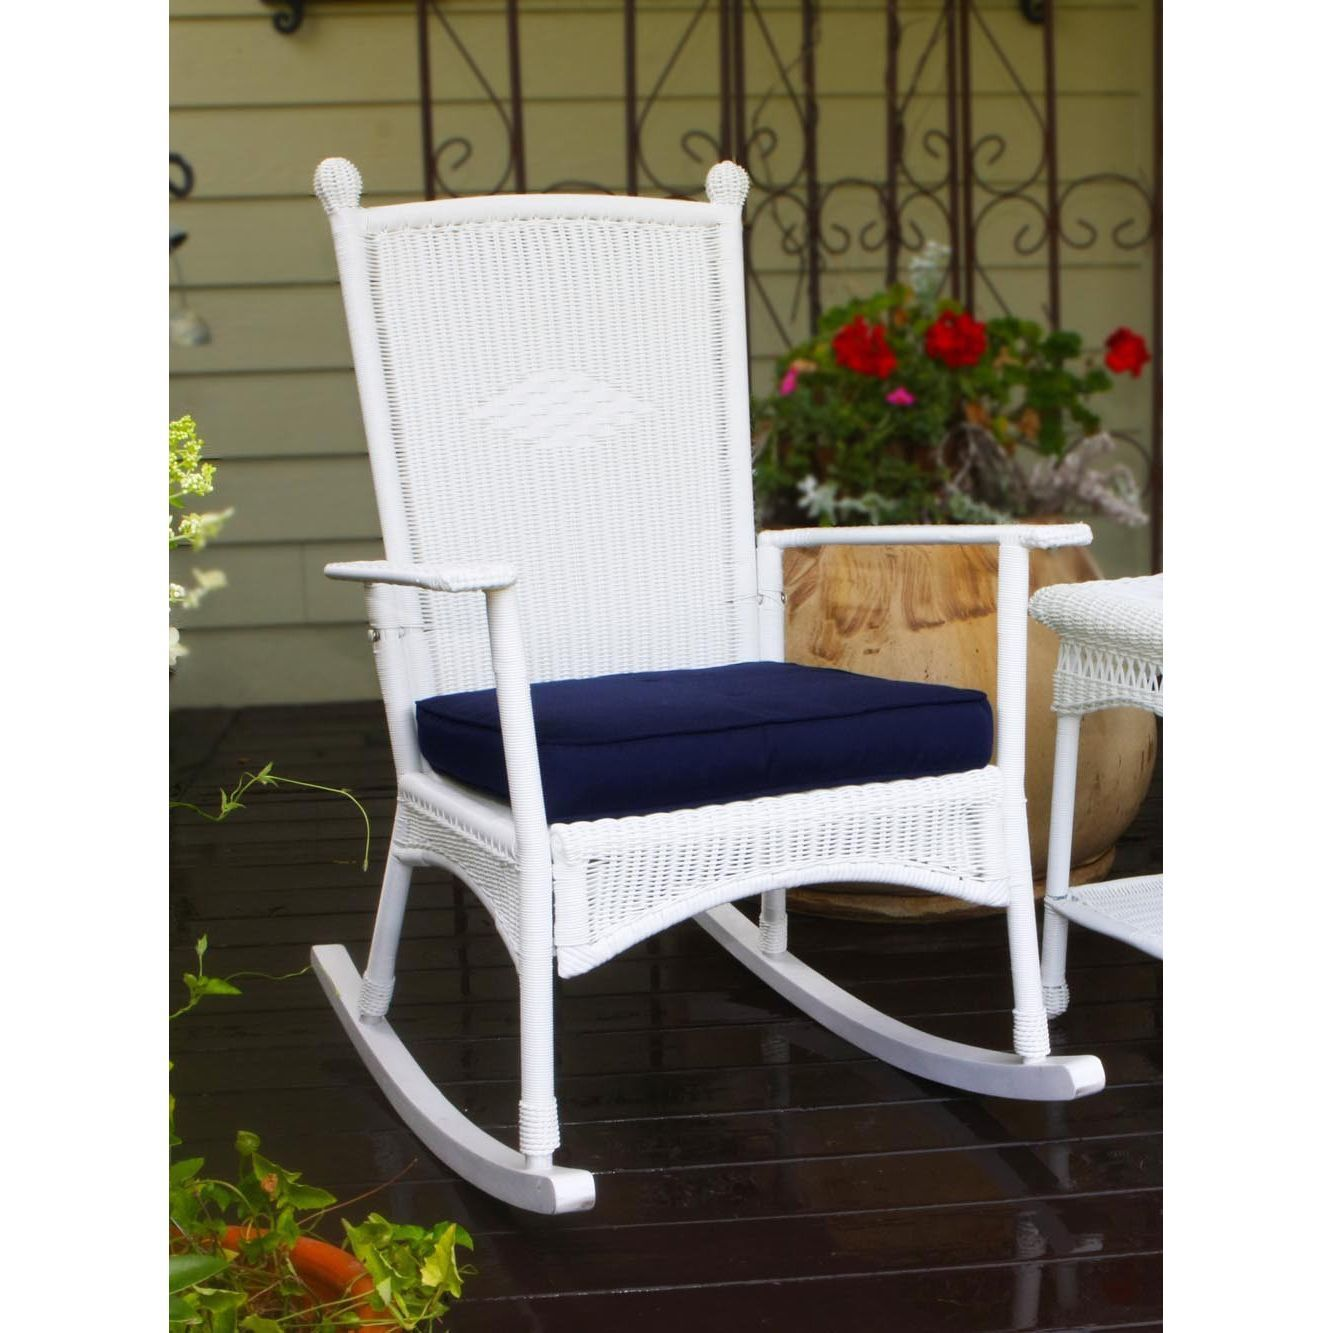 Attrayant Enhance The Look Of Your Porch Or Indoor Living Space With The Tortuga  Outdoor White Classic · Wicker Rocking ChairOutdoor ...